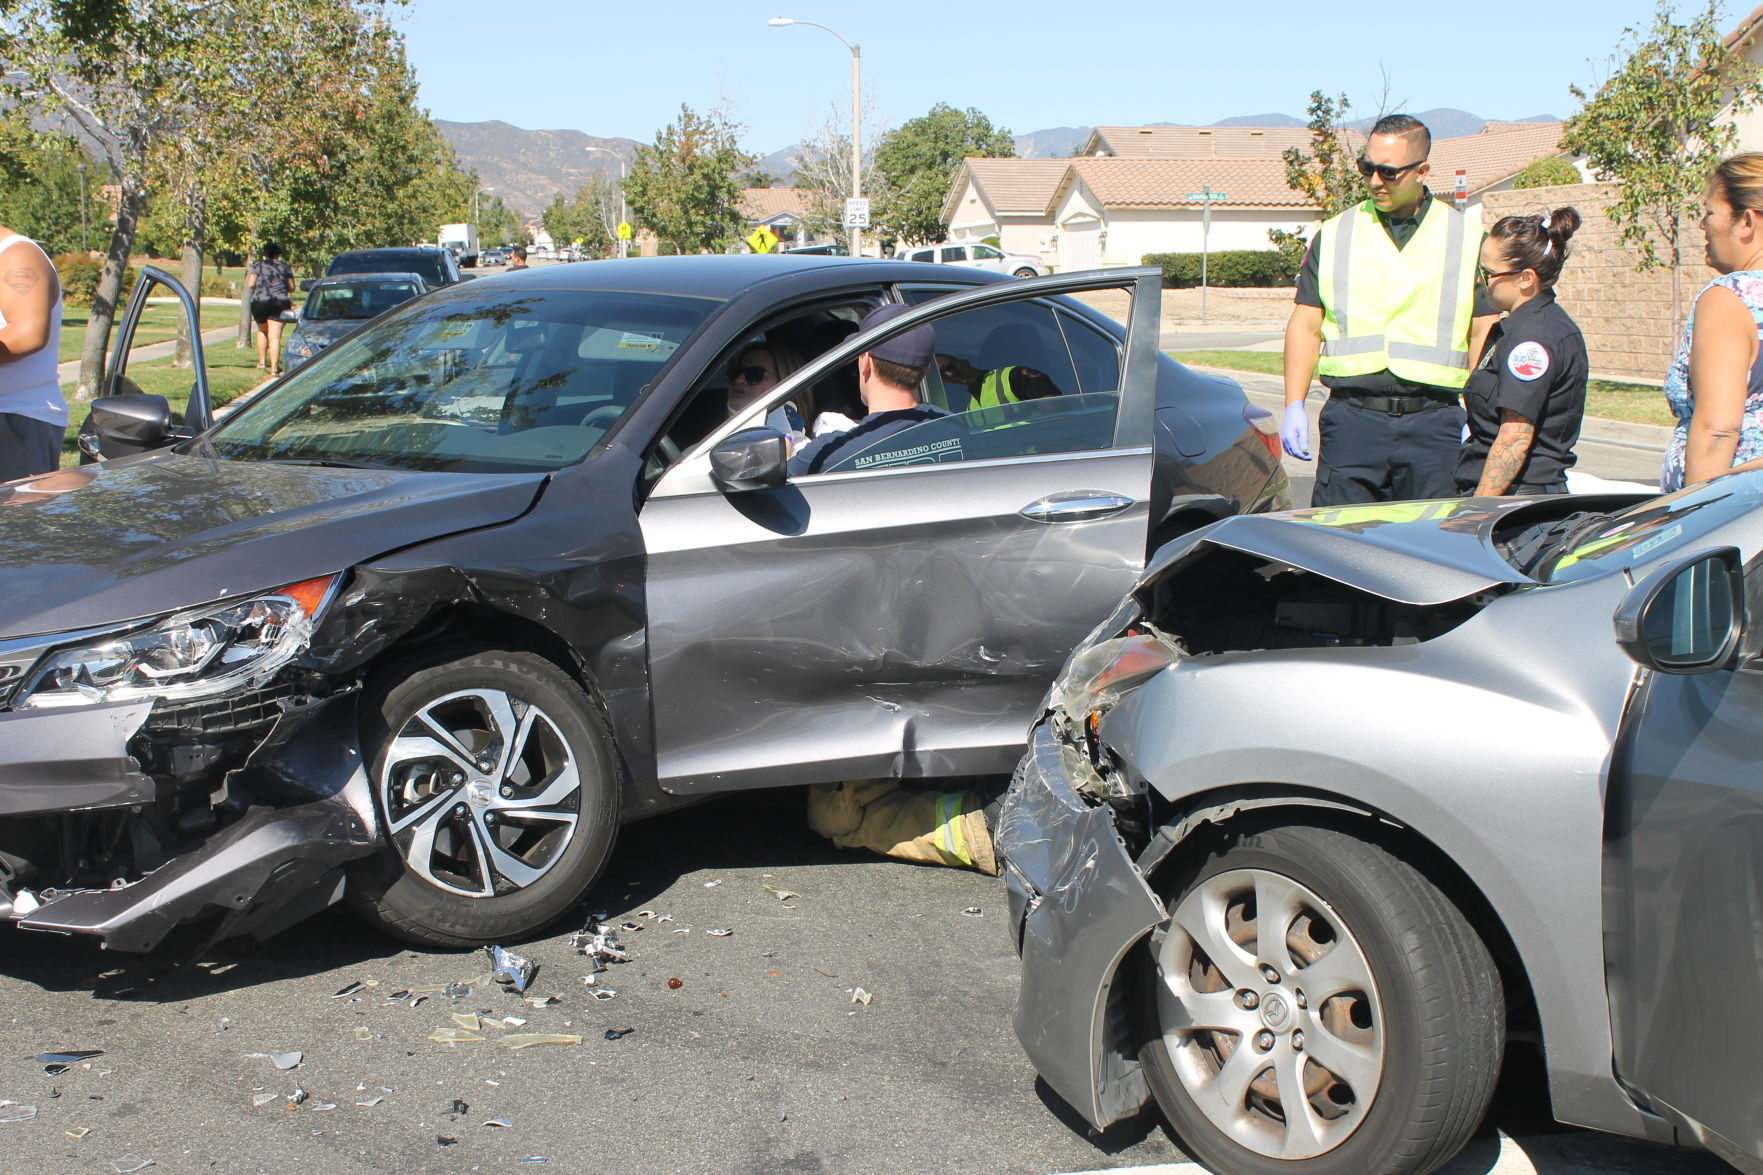 Fire Department Personnel Treat A Woman In A Honda After Her Car Was Struck  By A Mazda On The Corner Of Almeria And Baseline Avenues In Fontana On Oct.  15.